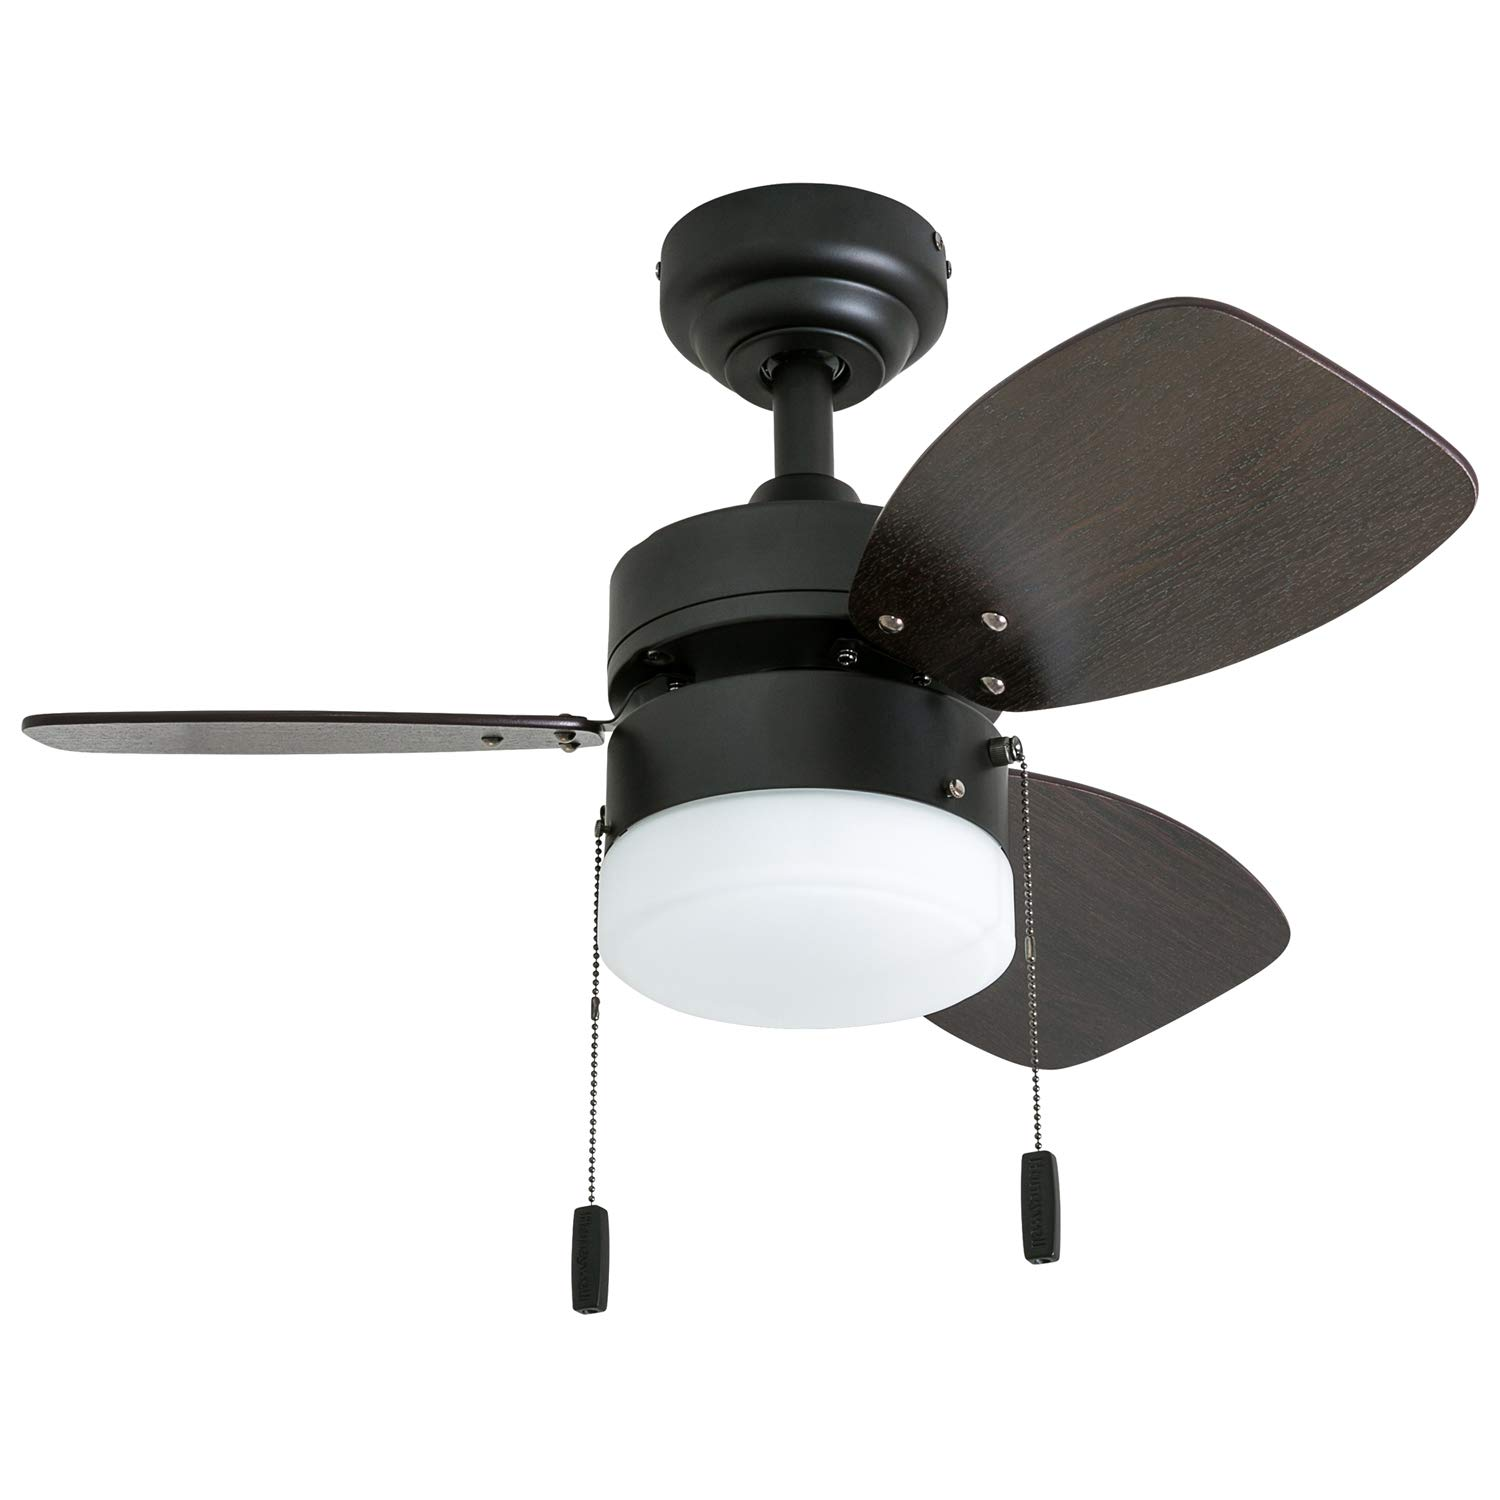 Honeywell Ceiling Fans 50602-01 Ocean Breeze Contemporary, 30'' LED Frosted Light, Light Oak/Satin Nickel Finish Blades, Gilded Espresso